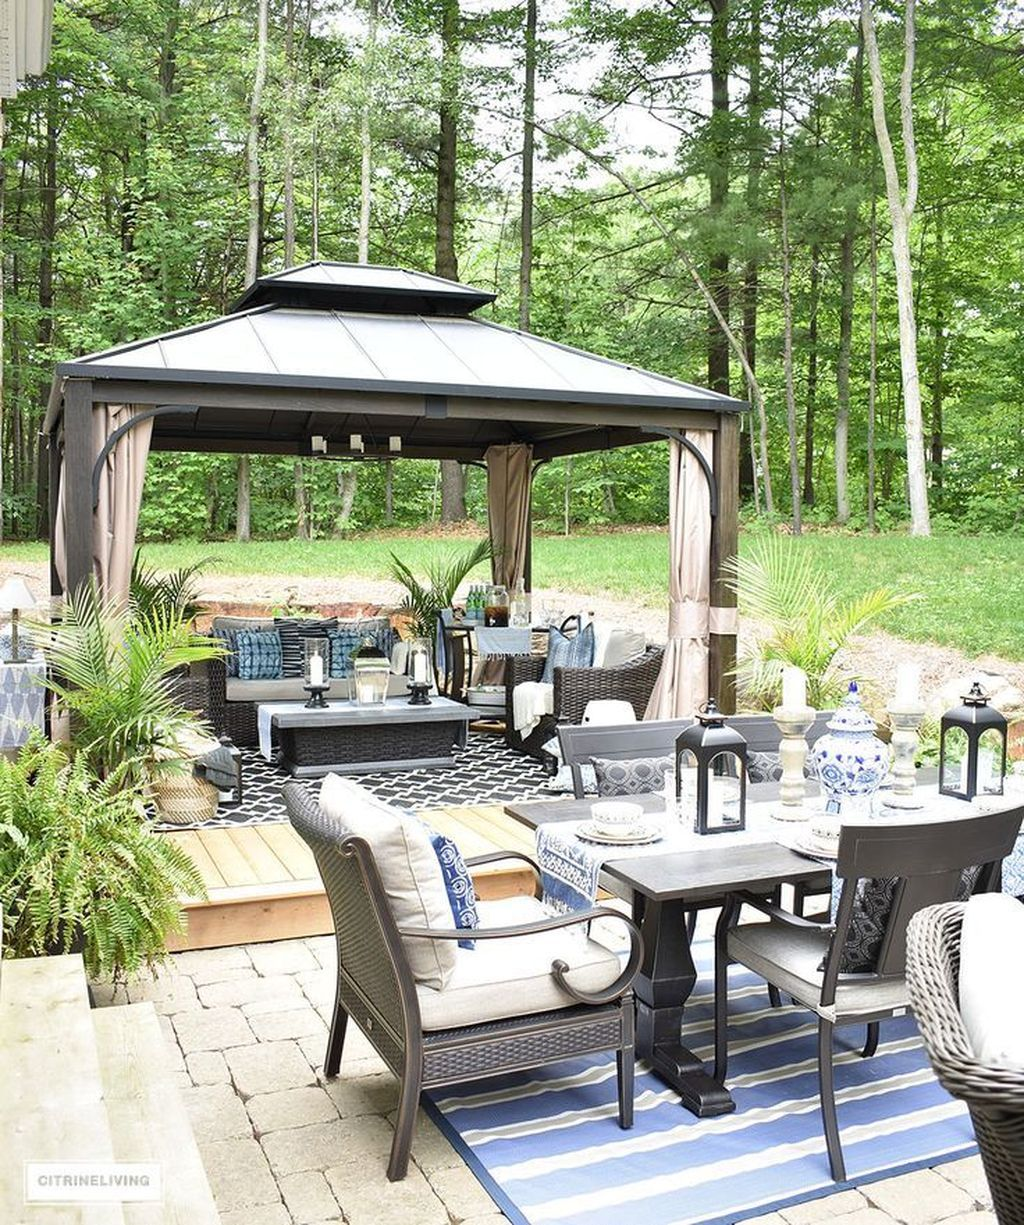 Pin By Trend4homy On Outdoor And Garden Ideas In 2019